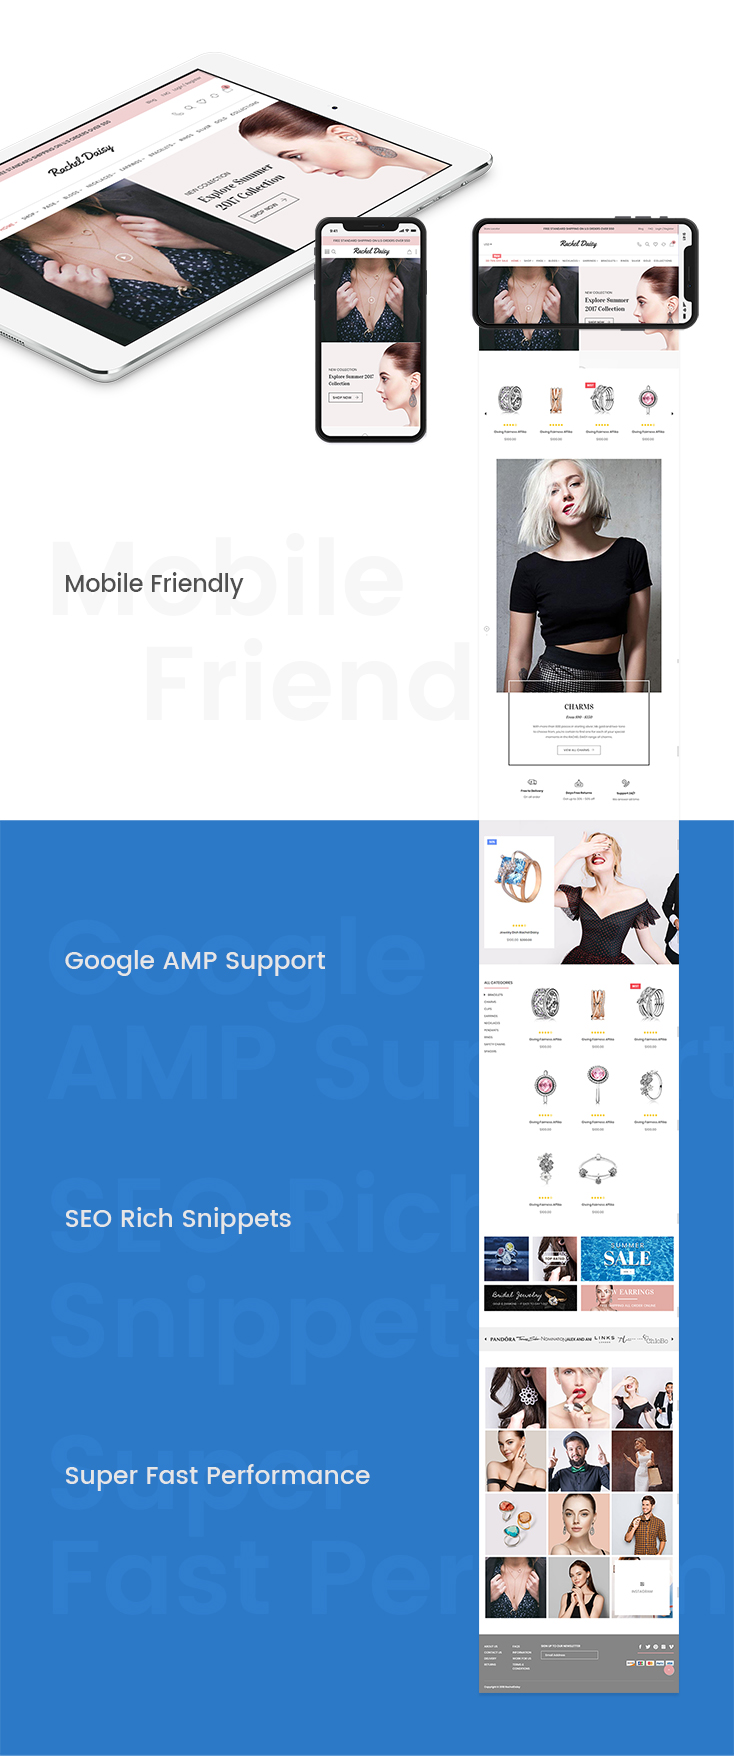 Mobile friendly, Googgle AMP support, SEO rich snippets, super fast performance